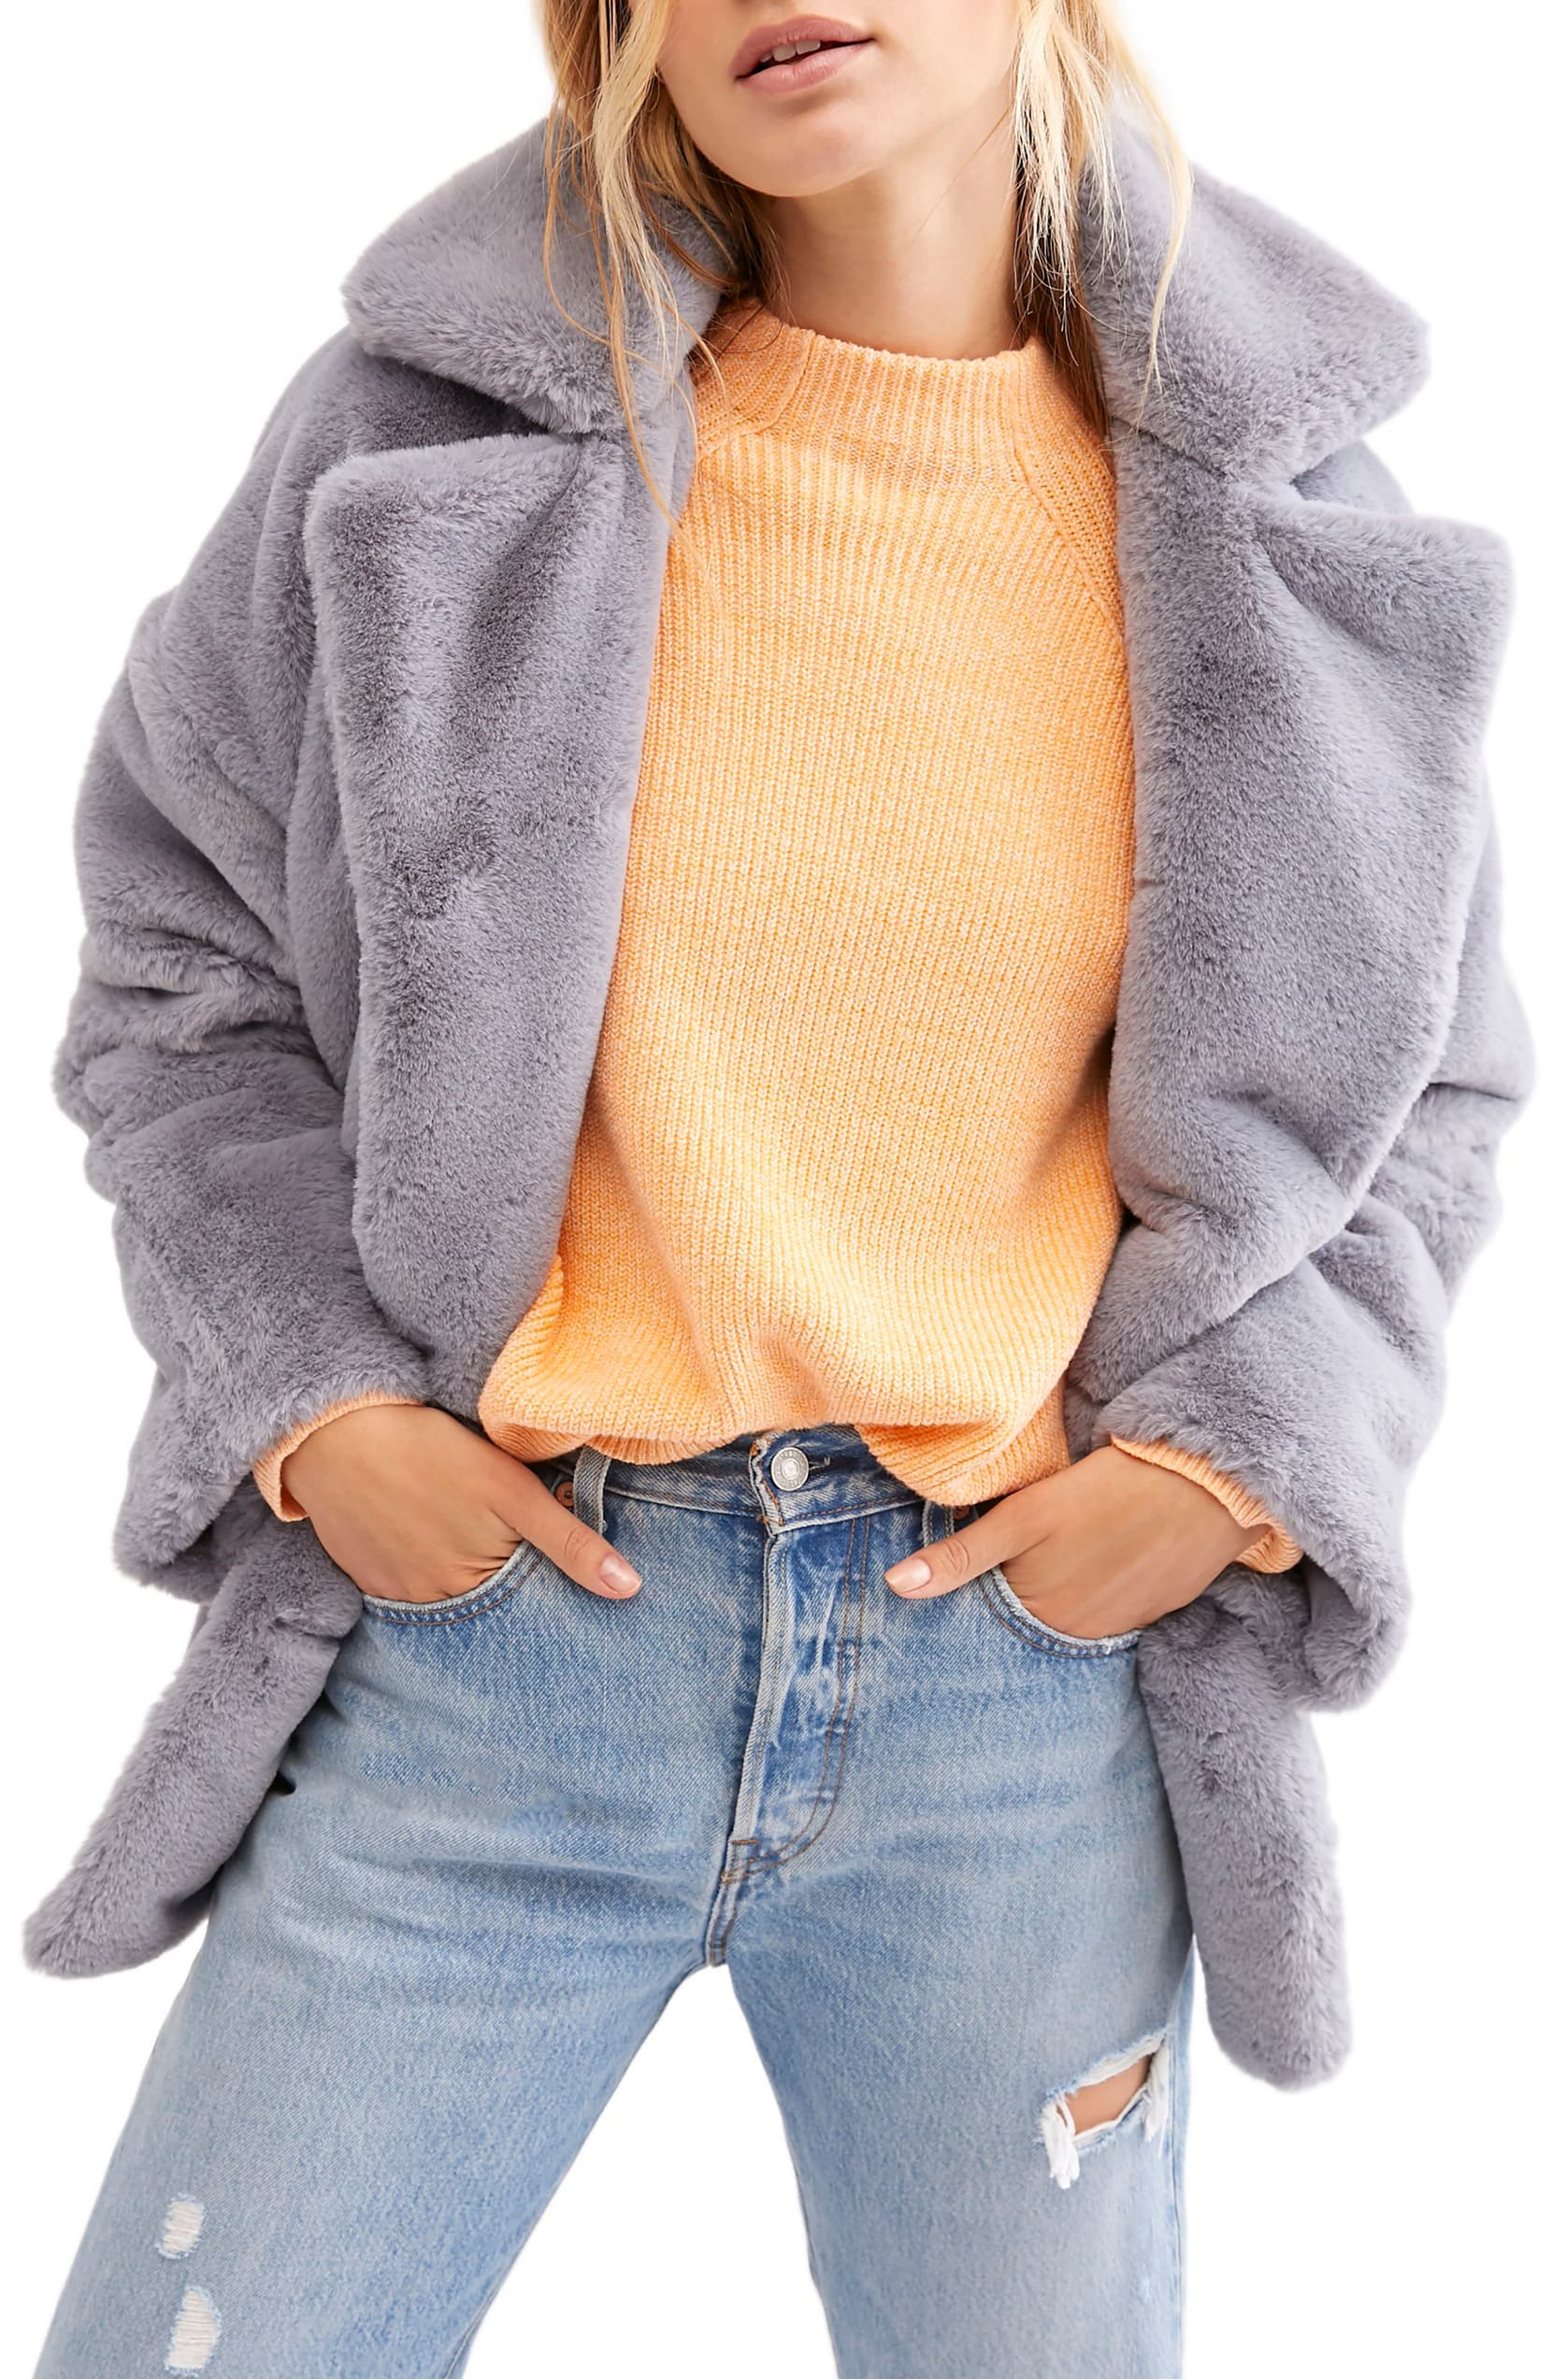 A little retro, a little rocker-chic, this fluffy faux-fur jacket is all cool. Shop it{ }- $148. (Image: Nordstrom){ }